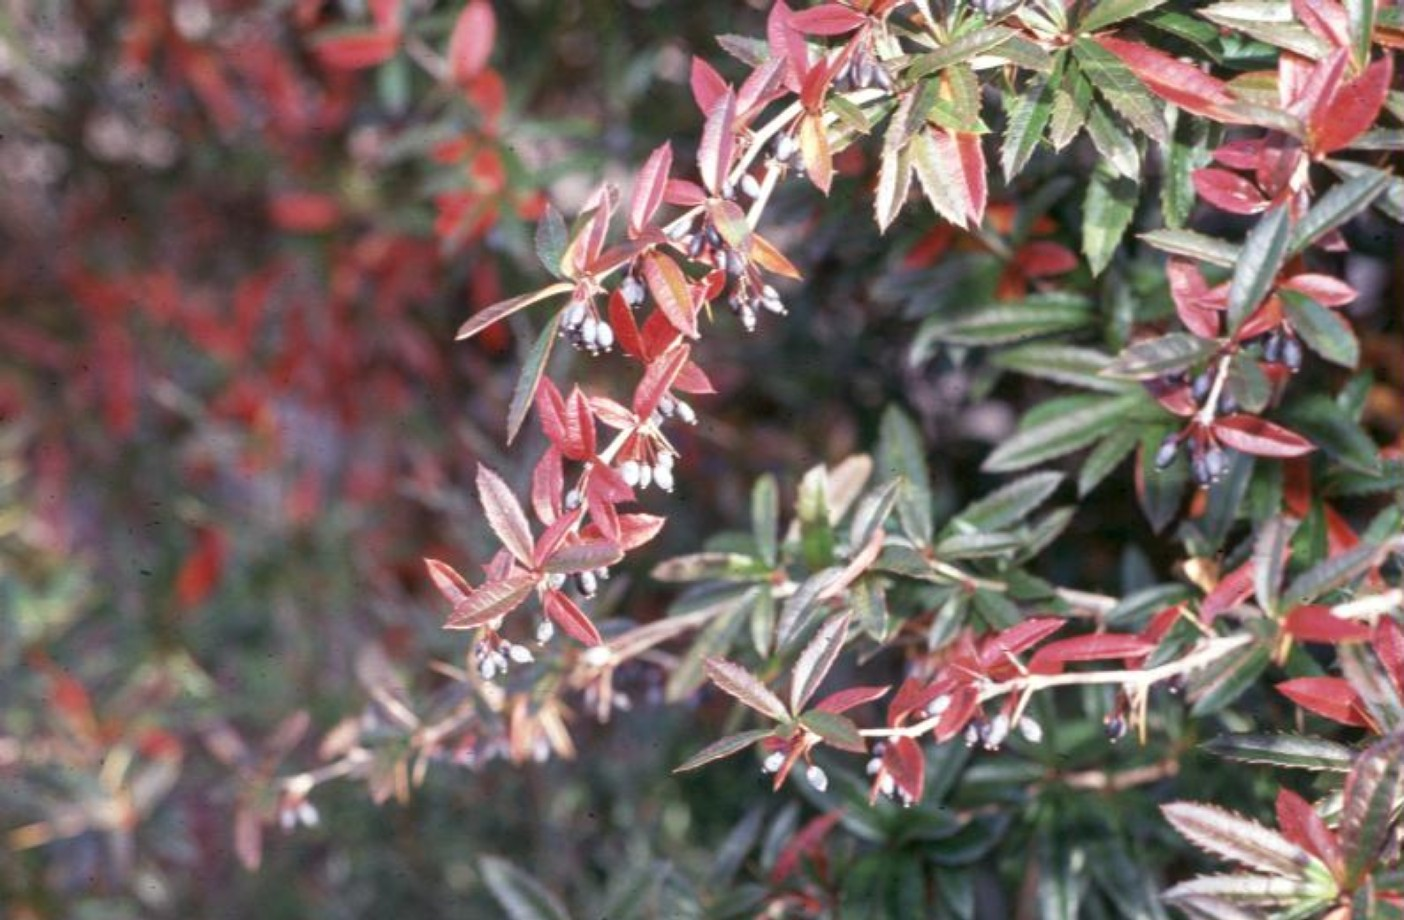 Berberis julianae / Berberis julianae